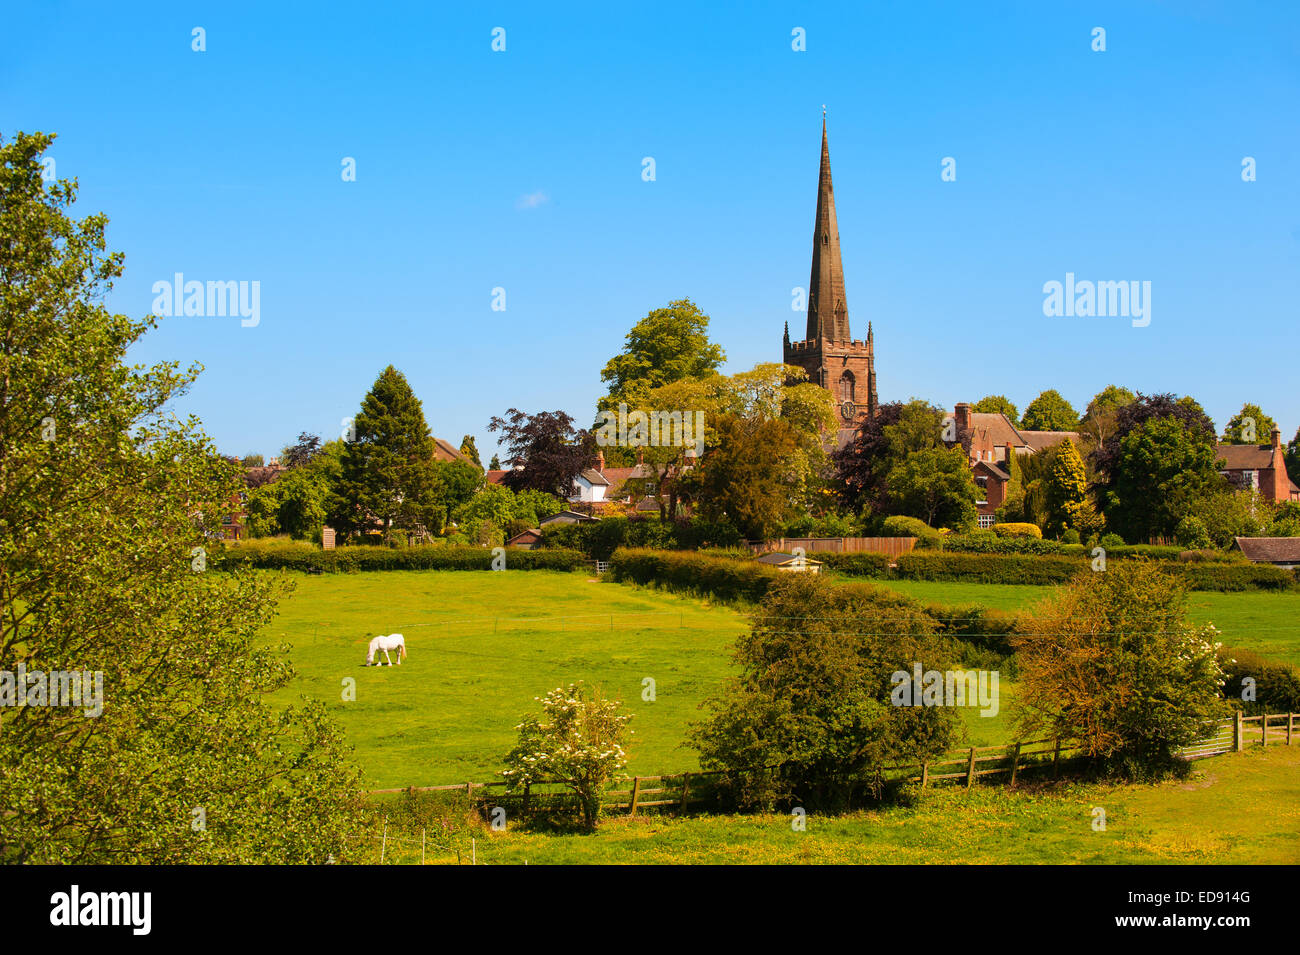 The church of St Mary and St Chad in the village of Brewood, Staffordshire, England. - Stock Image